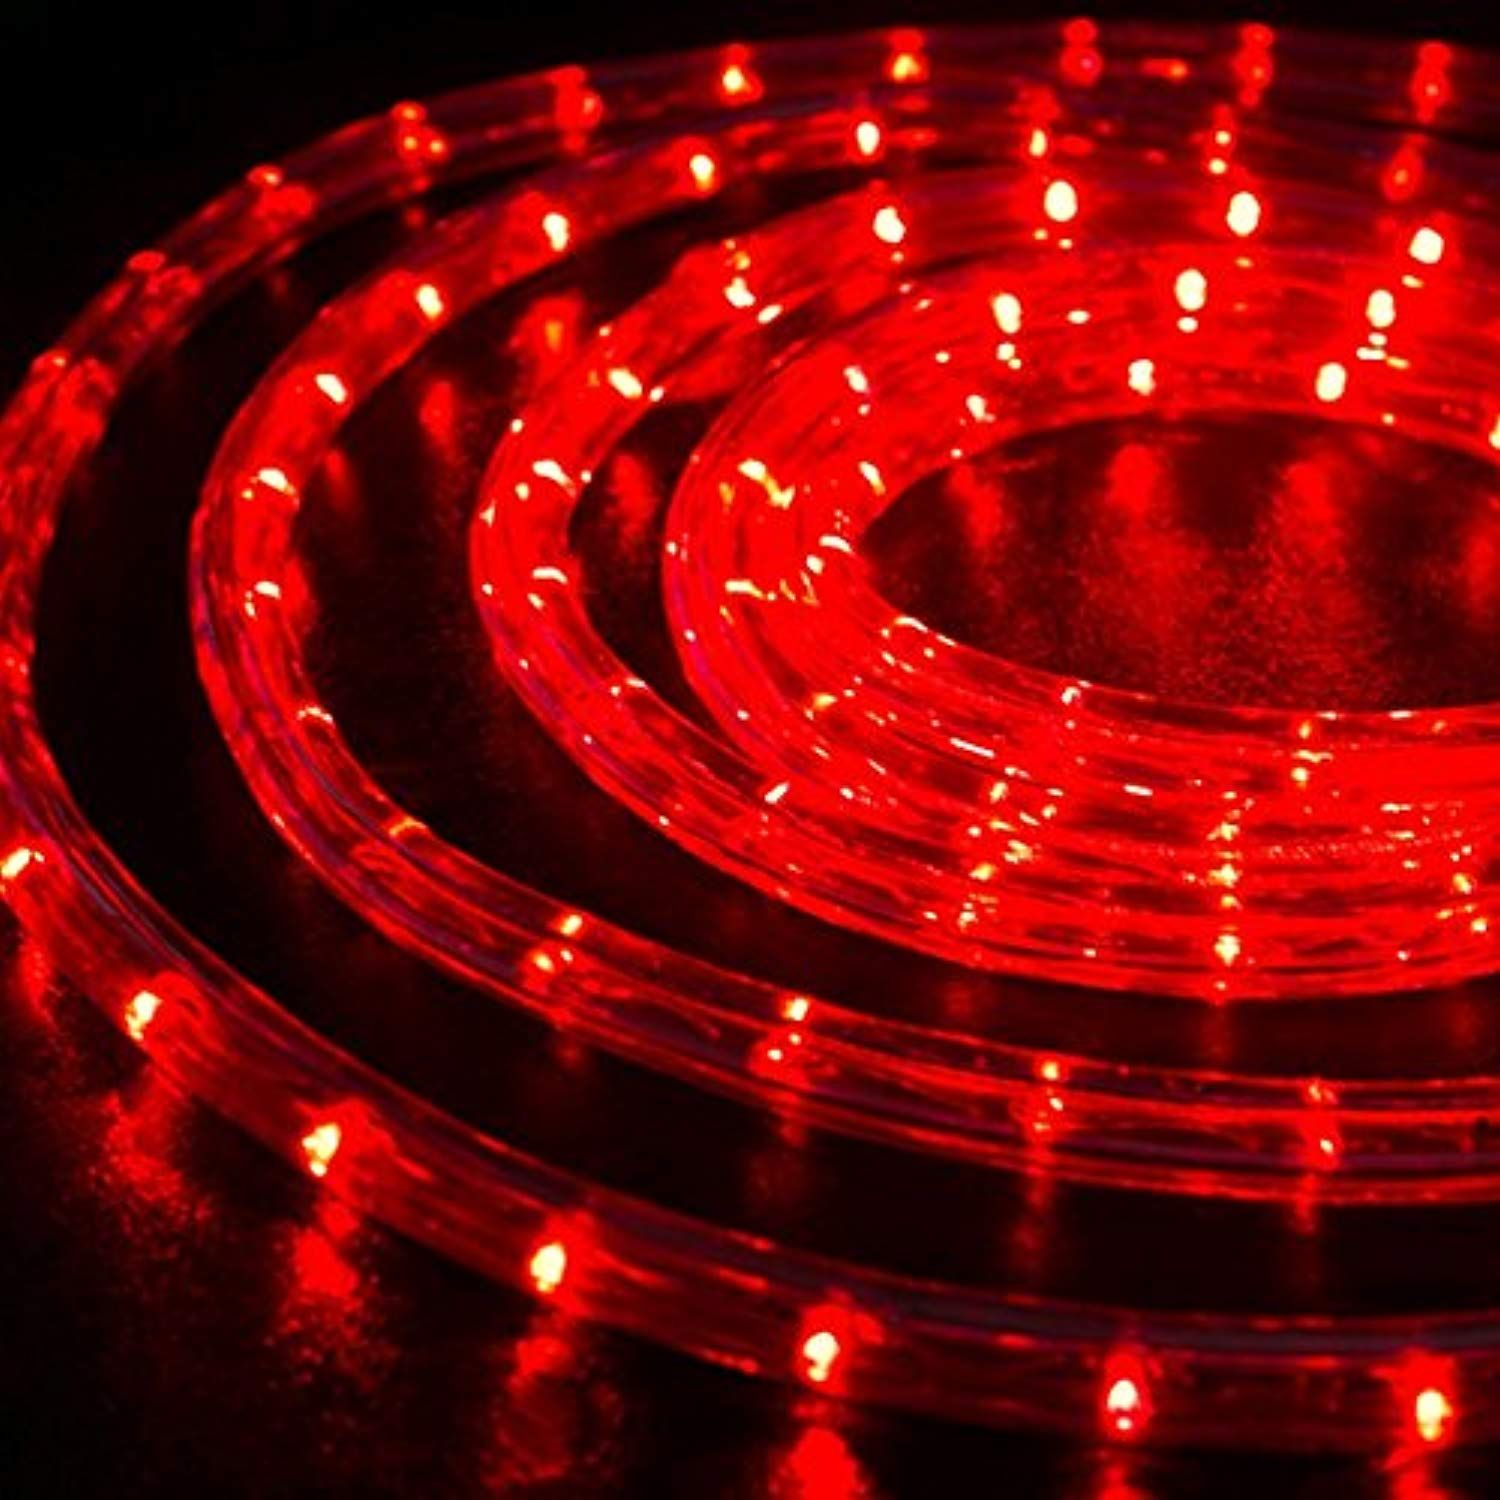 Wyzworks 25 Feet 1 2 Thick Red Pre Assembled Led Rope Lights With 10 50 100 150 Option Christmas Hol Led Rope Led Rope Lights Holiday Decor Christmas